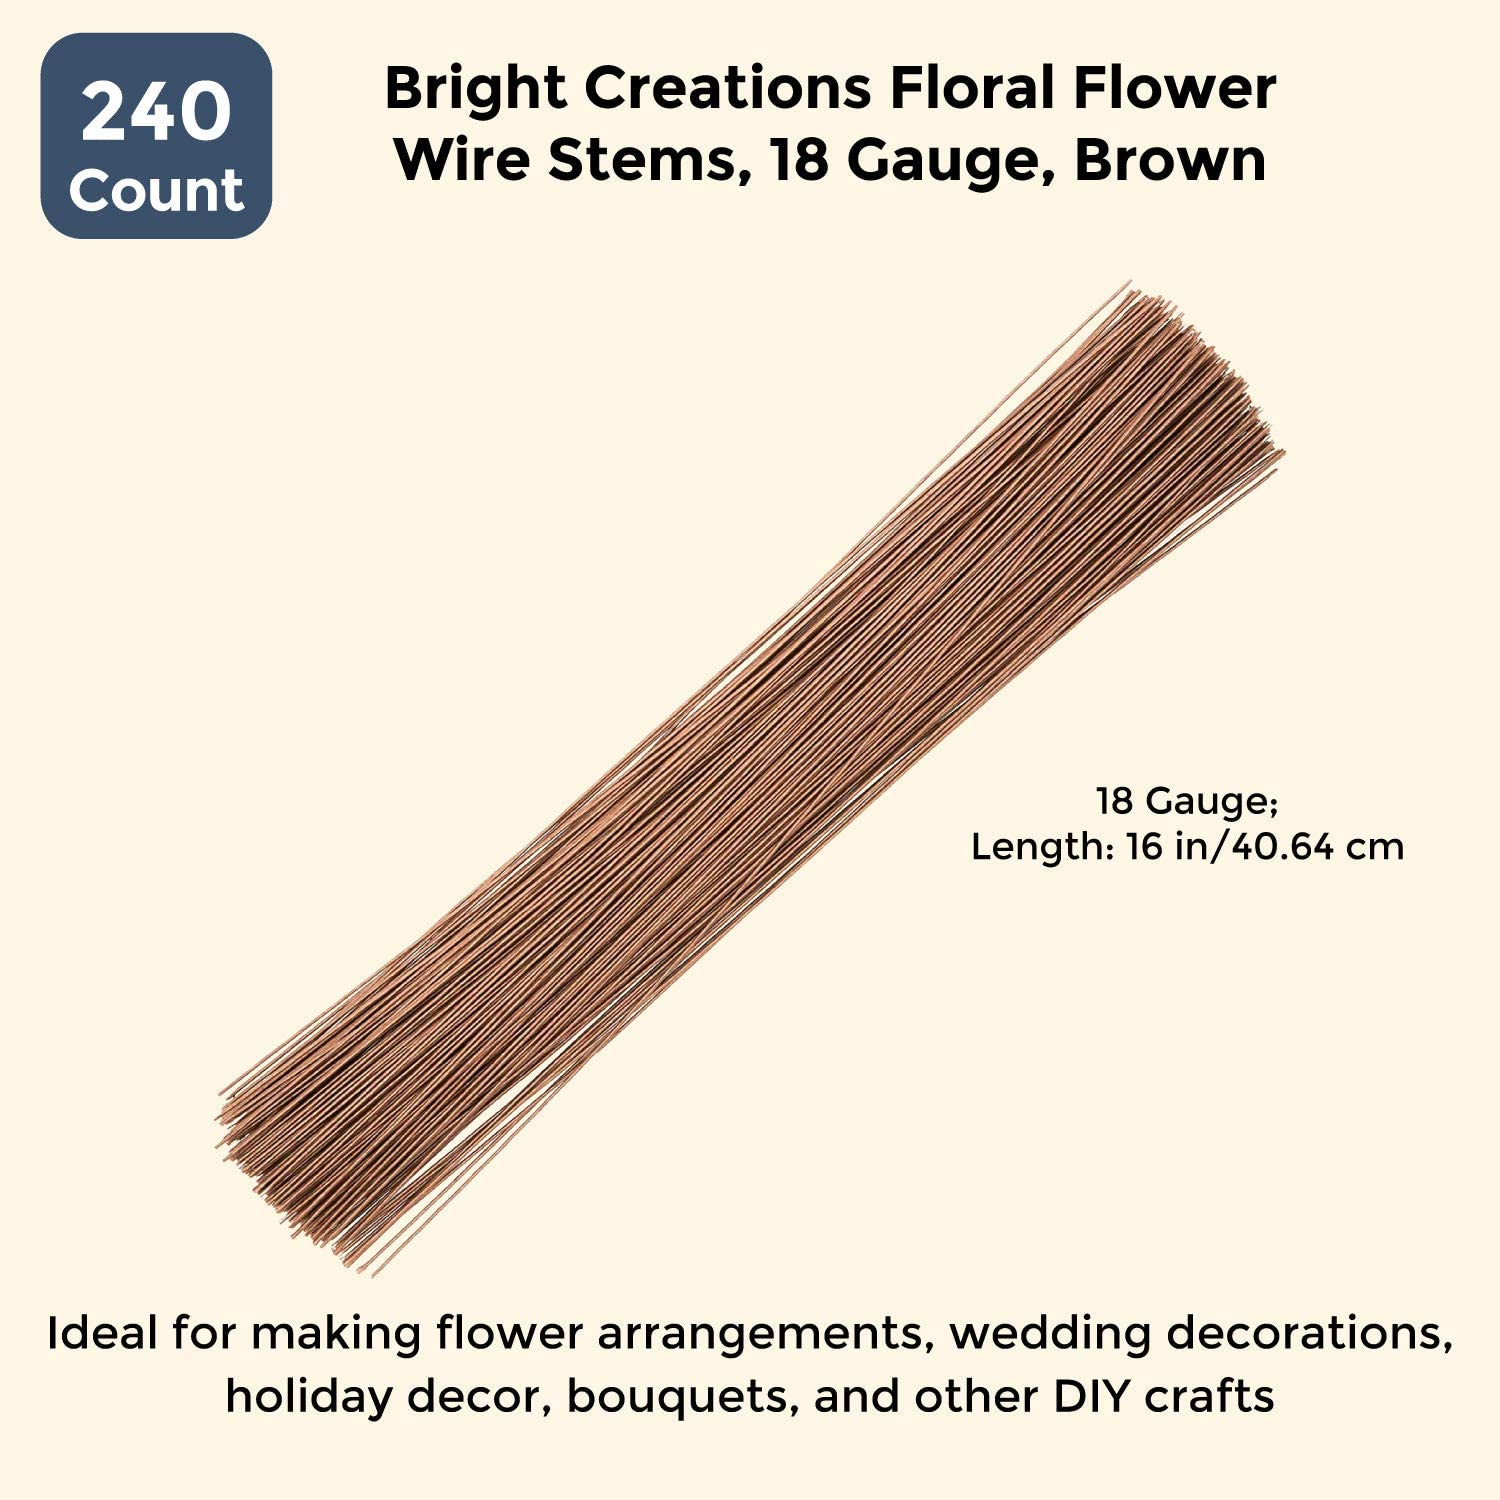 24 Gauge Bright Creations Floral Flower Wire Stems 1100 Count 16 Inch Brown